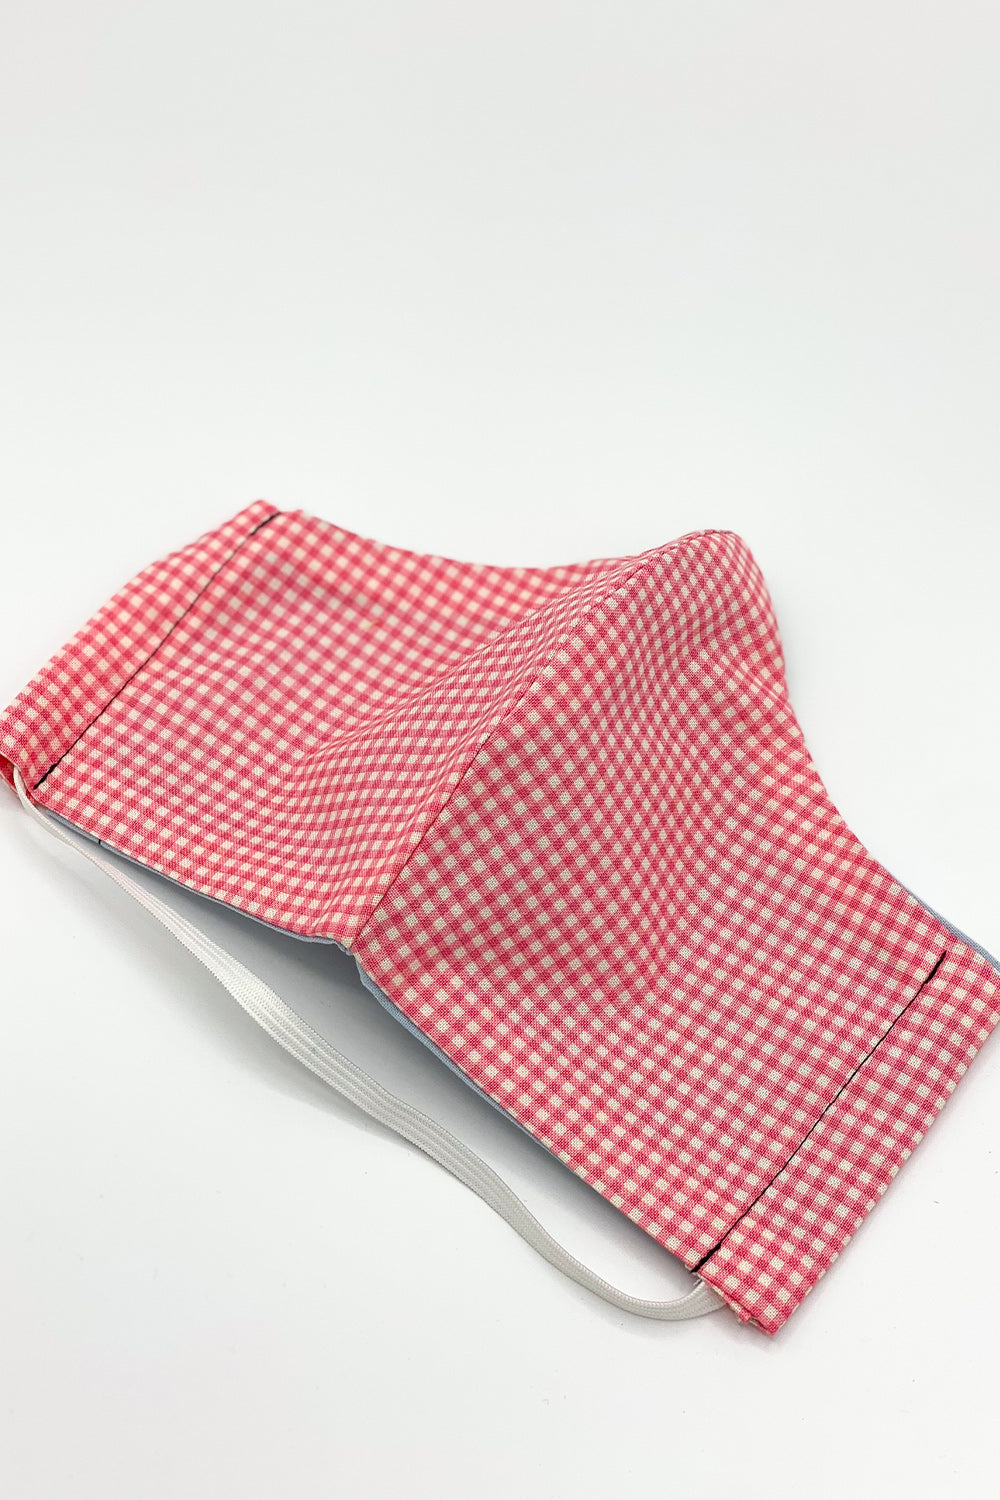 Gingham Your Attention Pink Mask